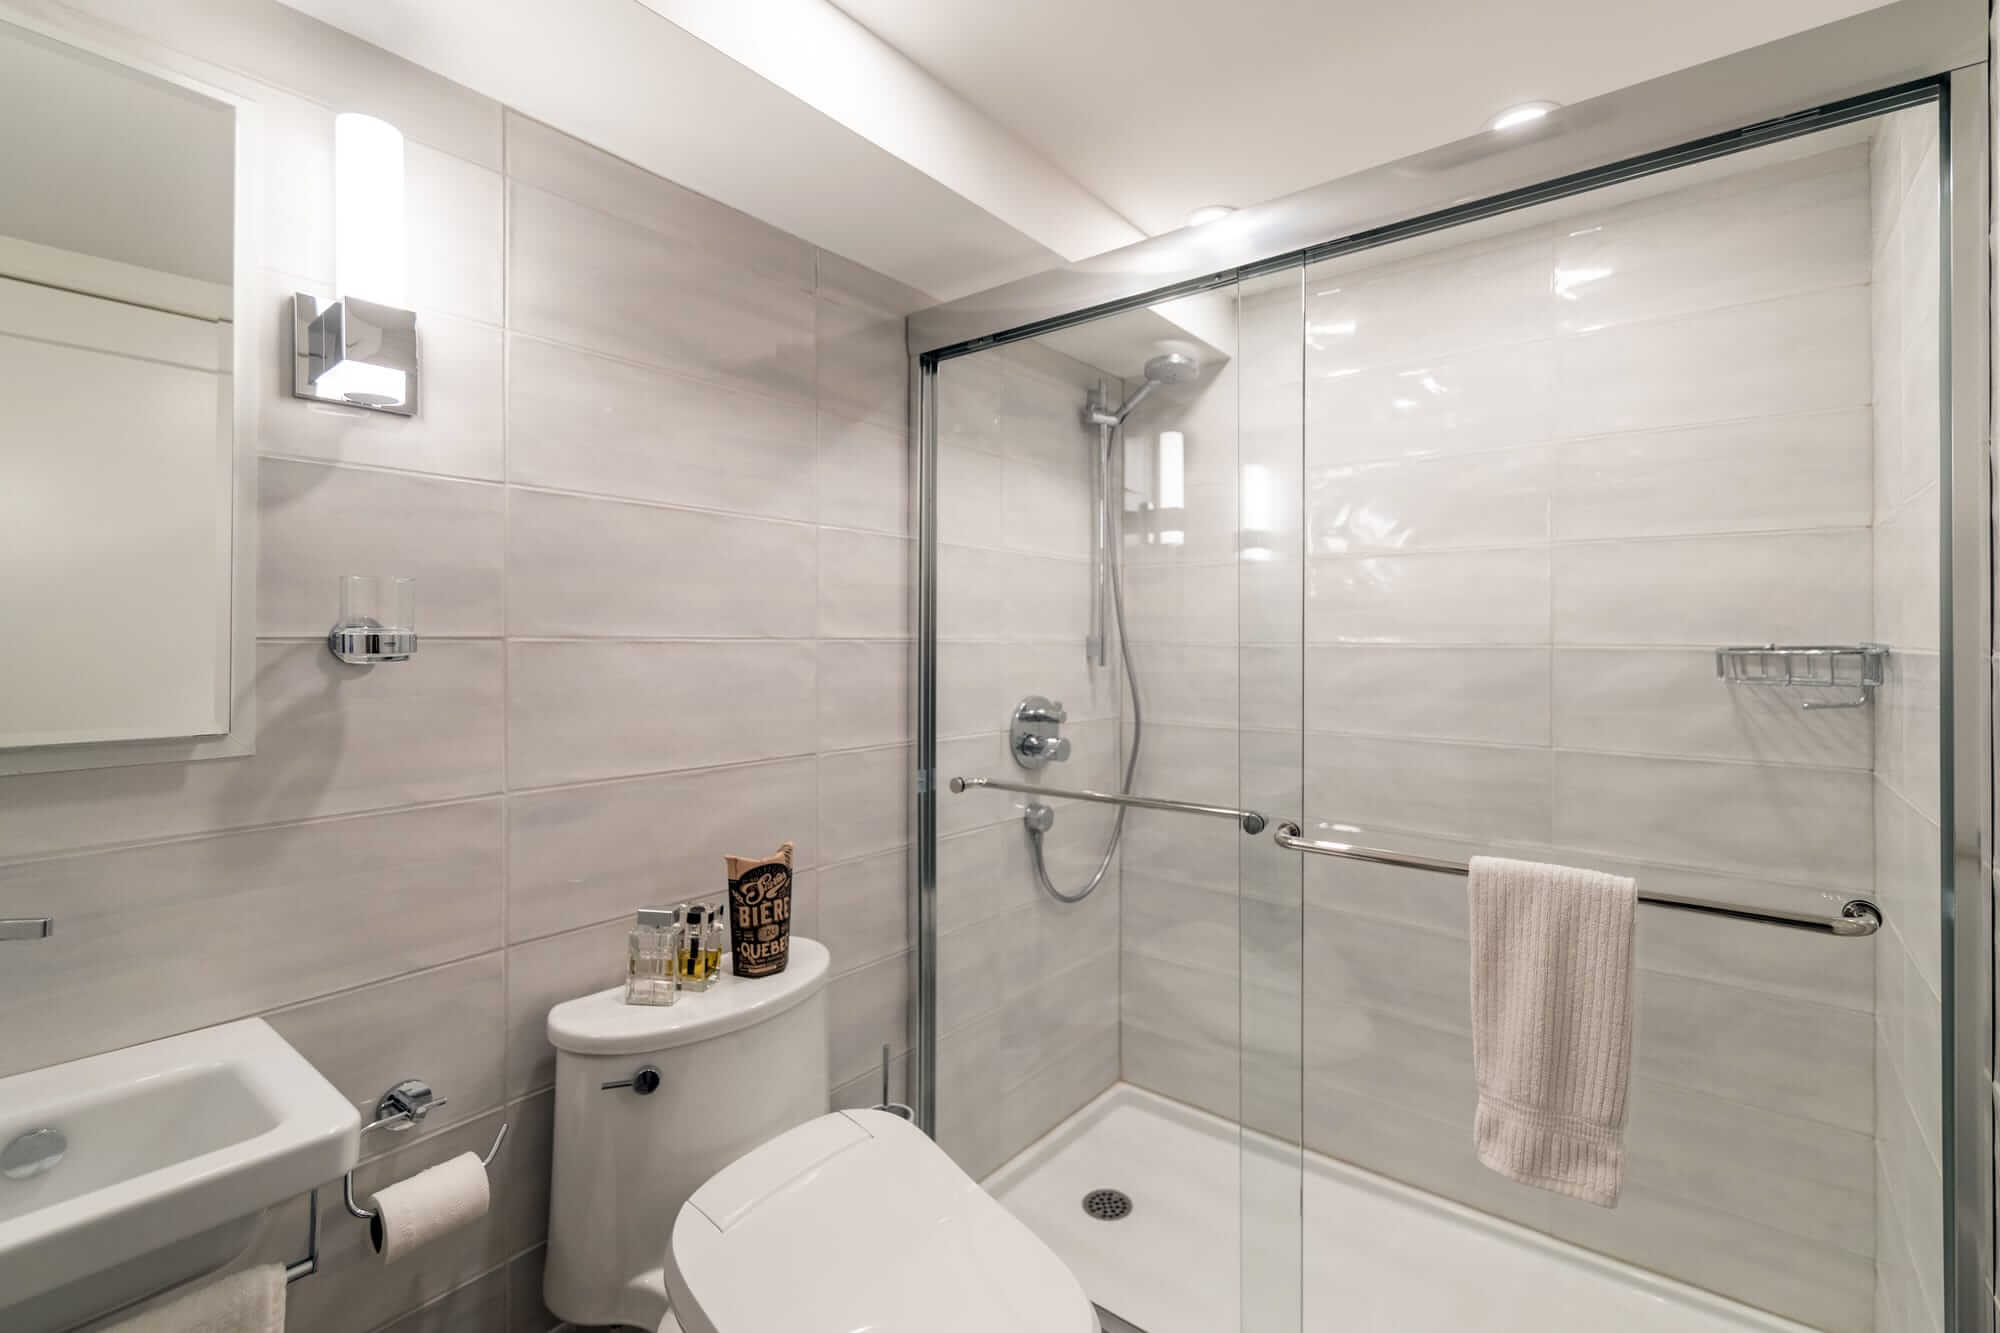 Contemporary bathroom in a basement with shower bath and white freestanding washbasin